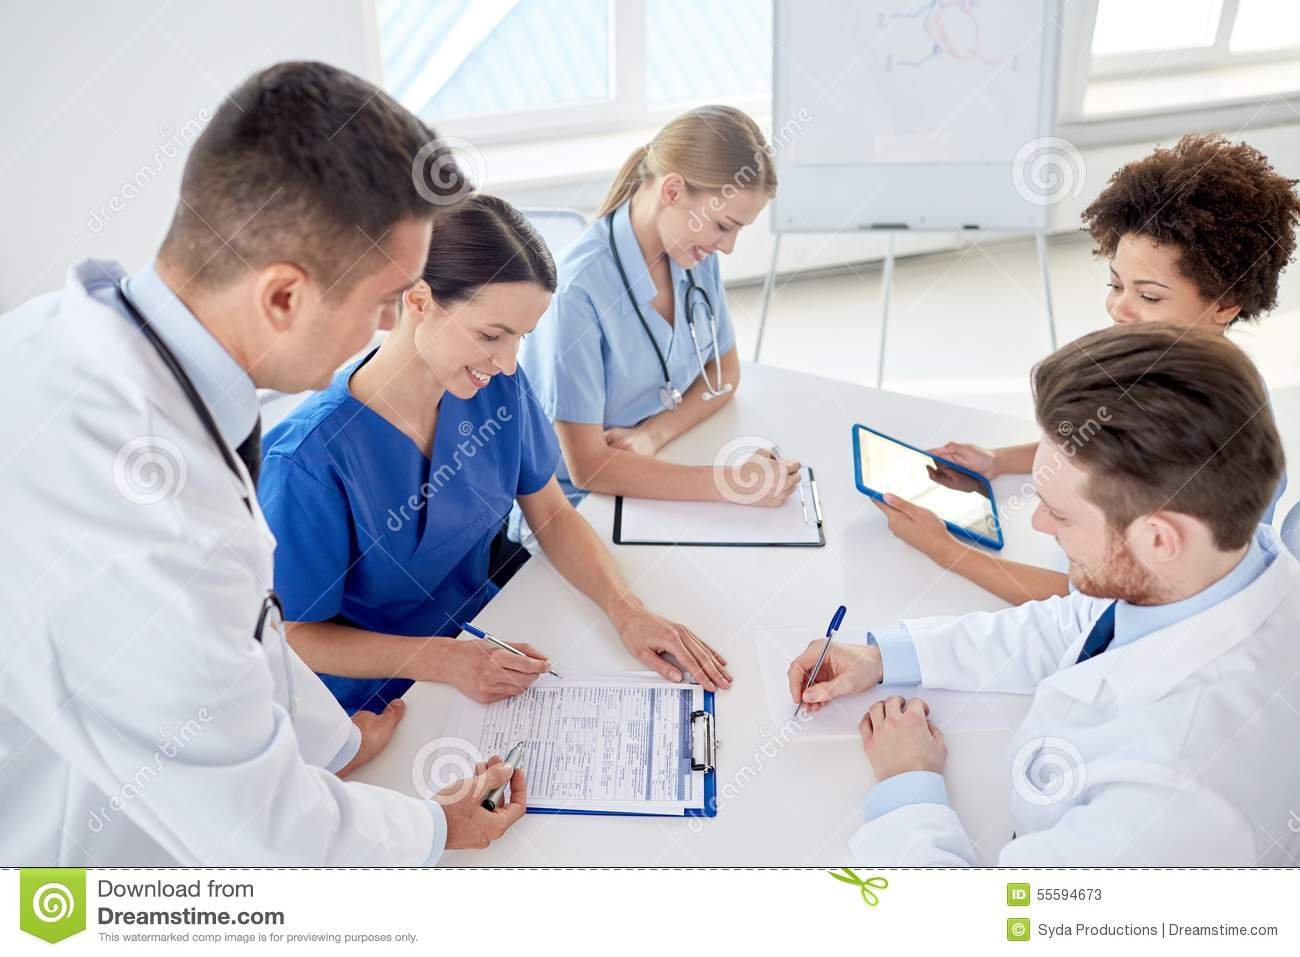 health education in a hospital setting Through education, patients can be made aware of their disease process and   to view and to hear patient education materials in the hospital and some of   however, in an acute care setting this might be more difficult to do.